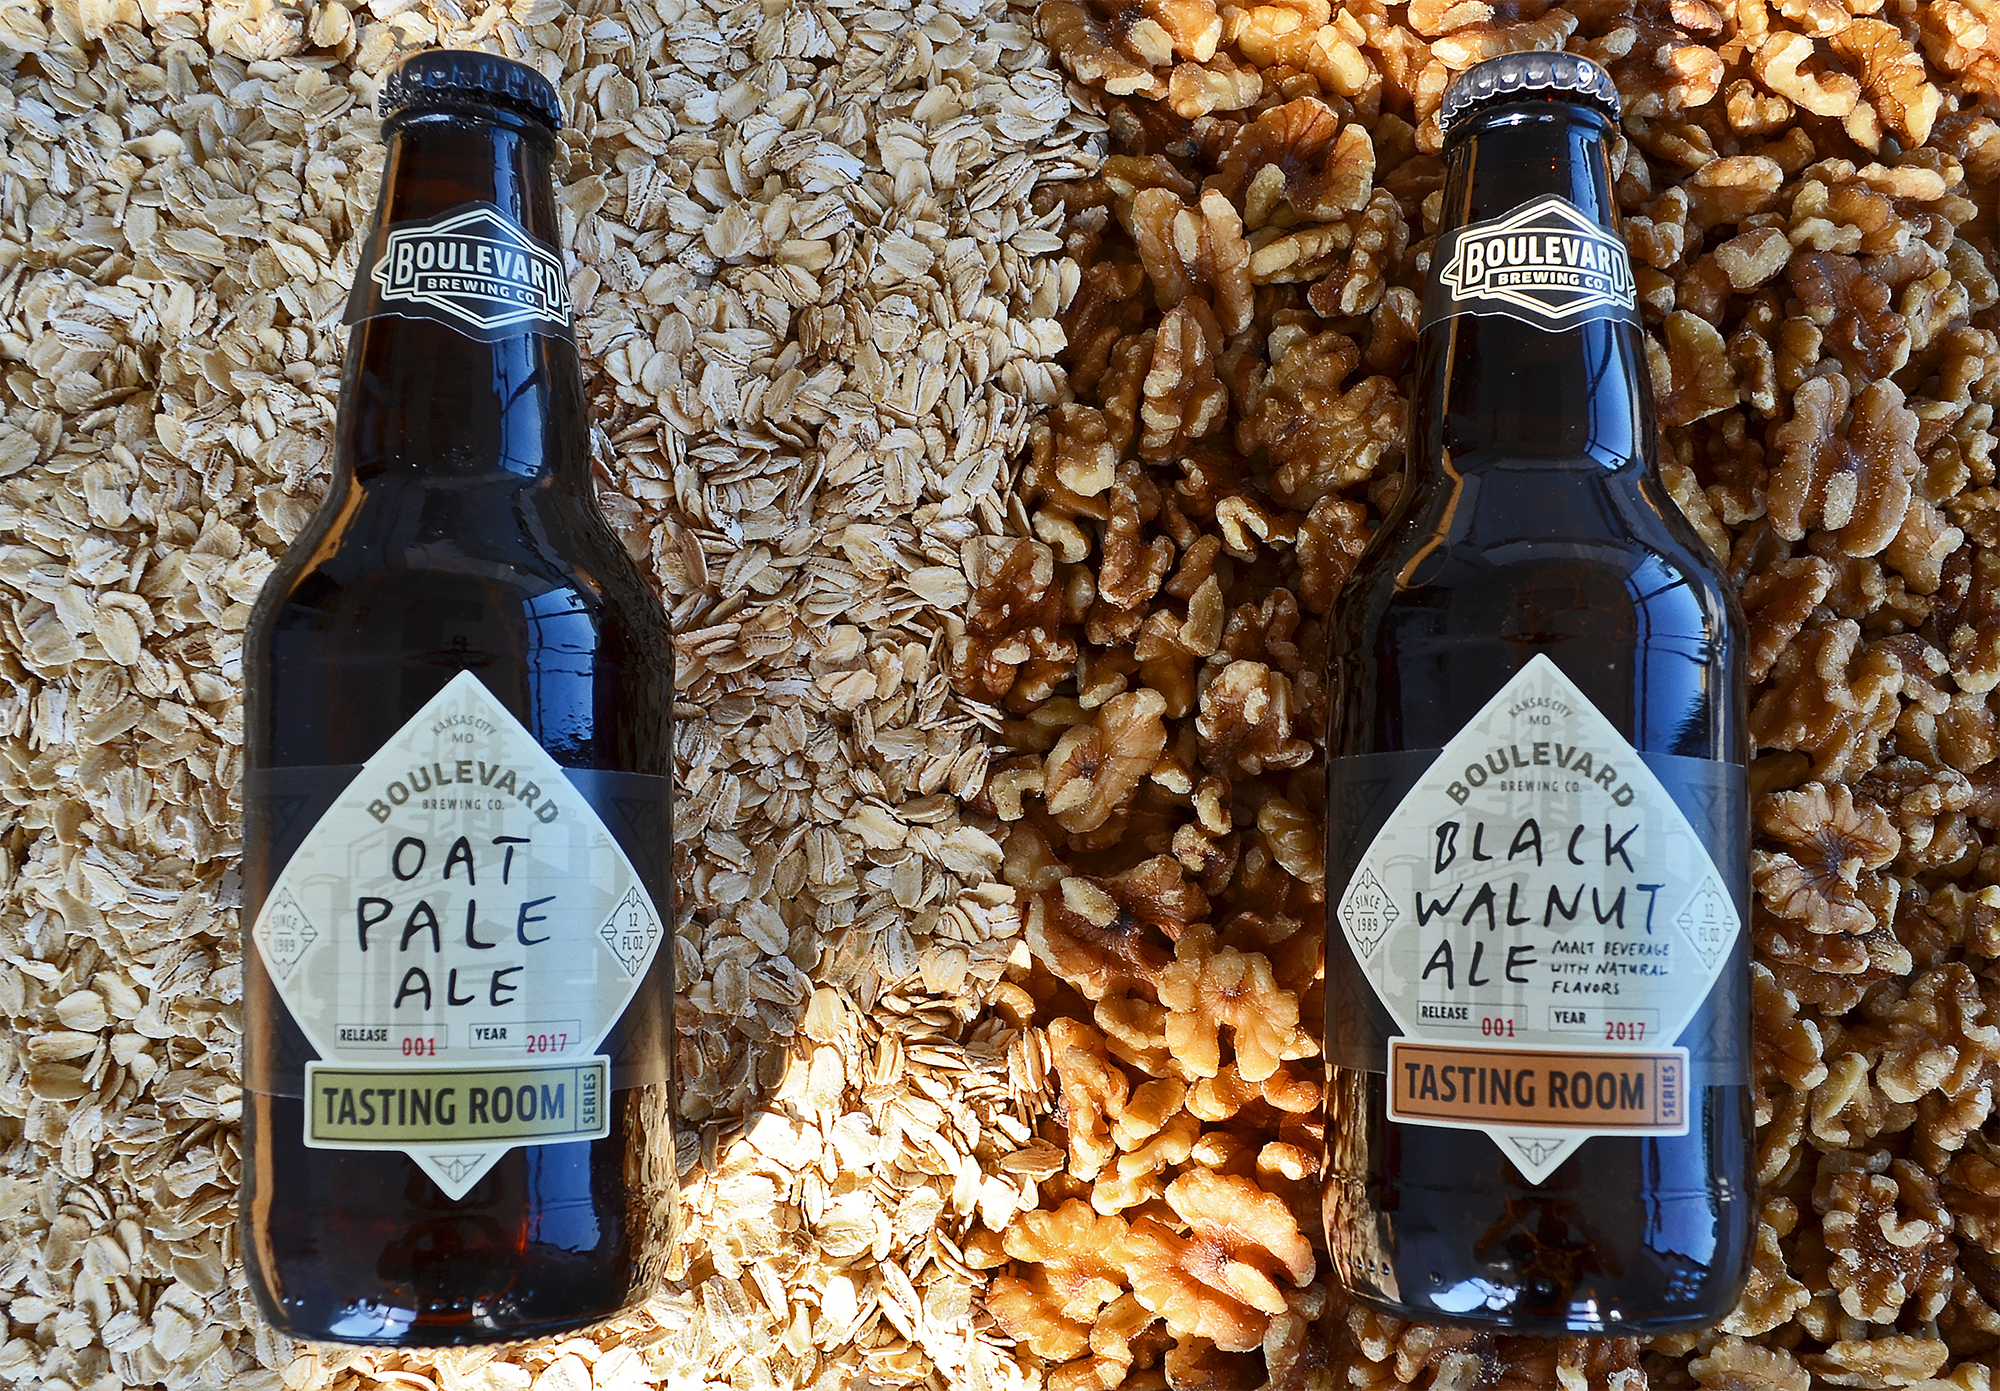 Black Walnut Ale and Oat Pale Ale